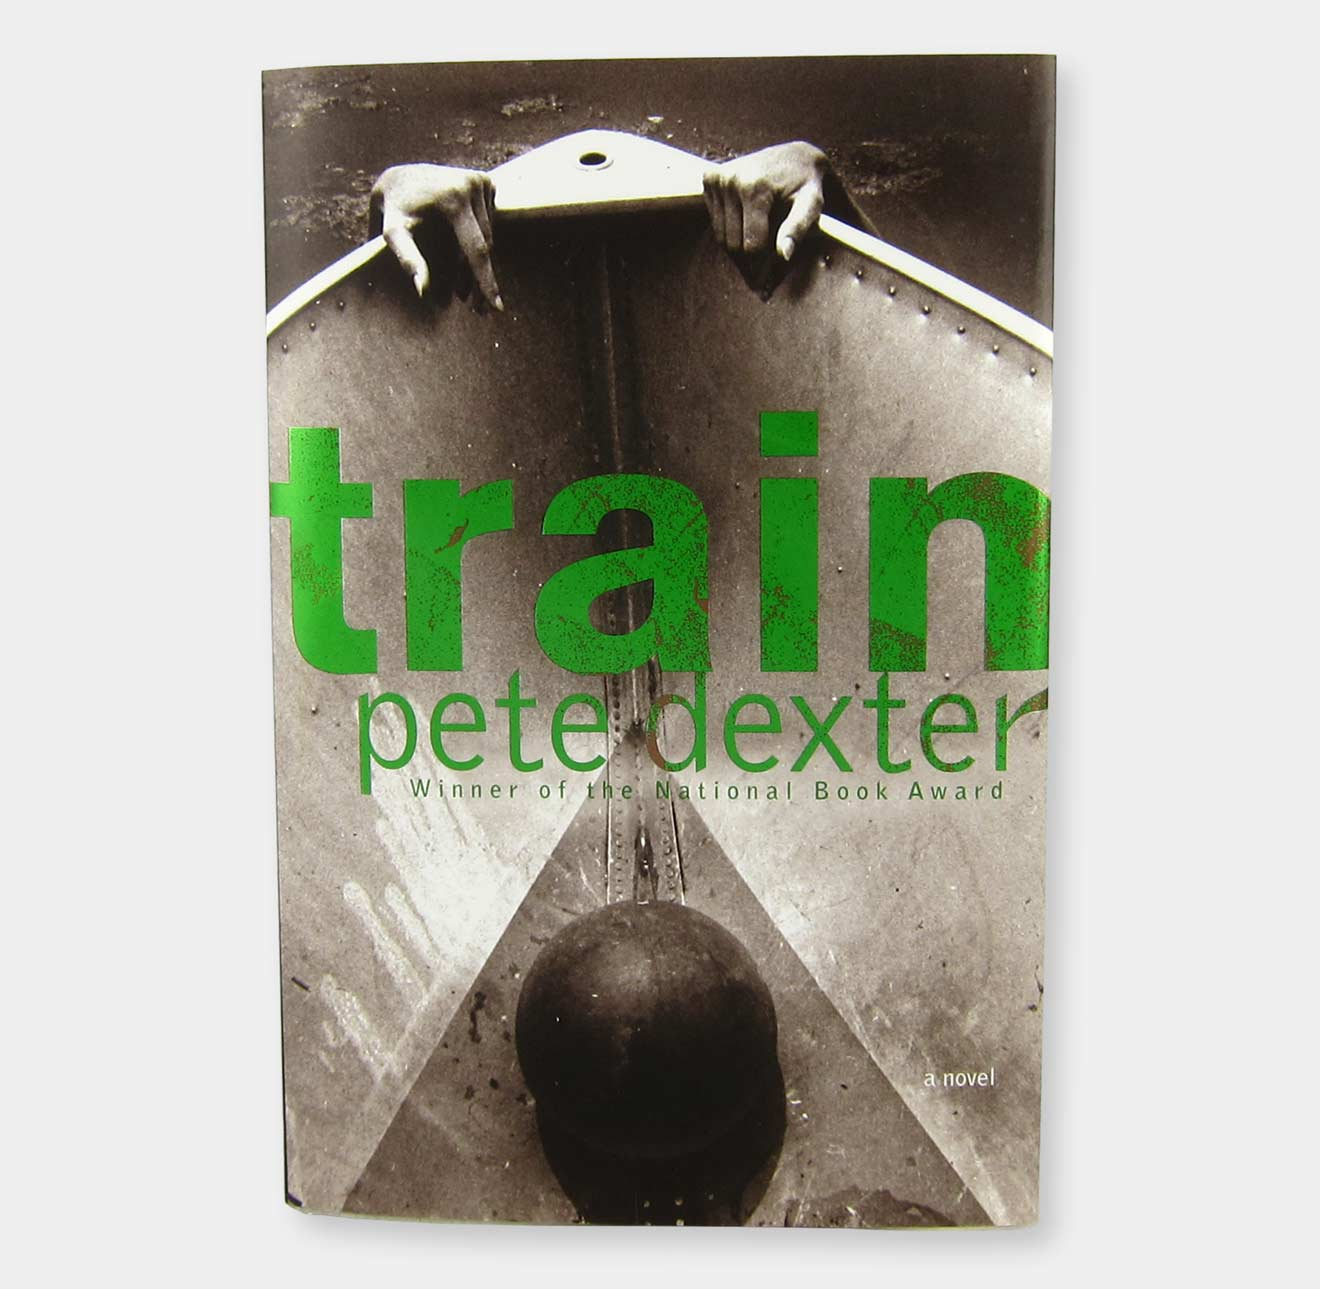 Train book cover